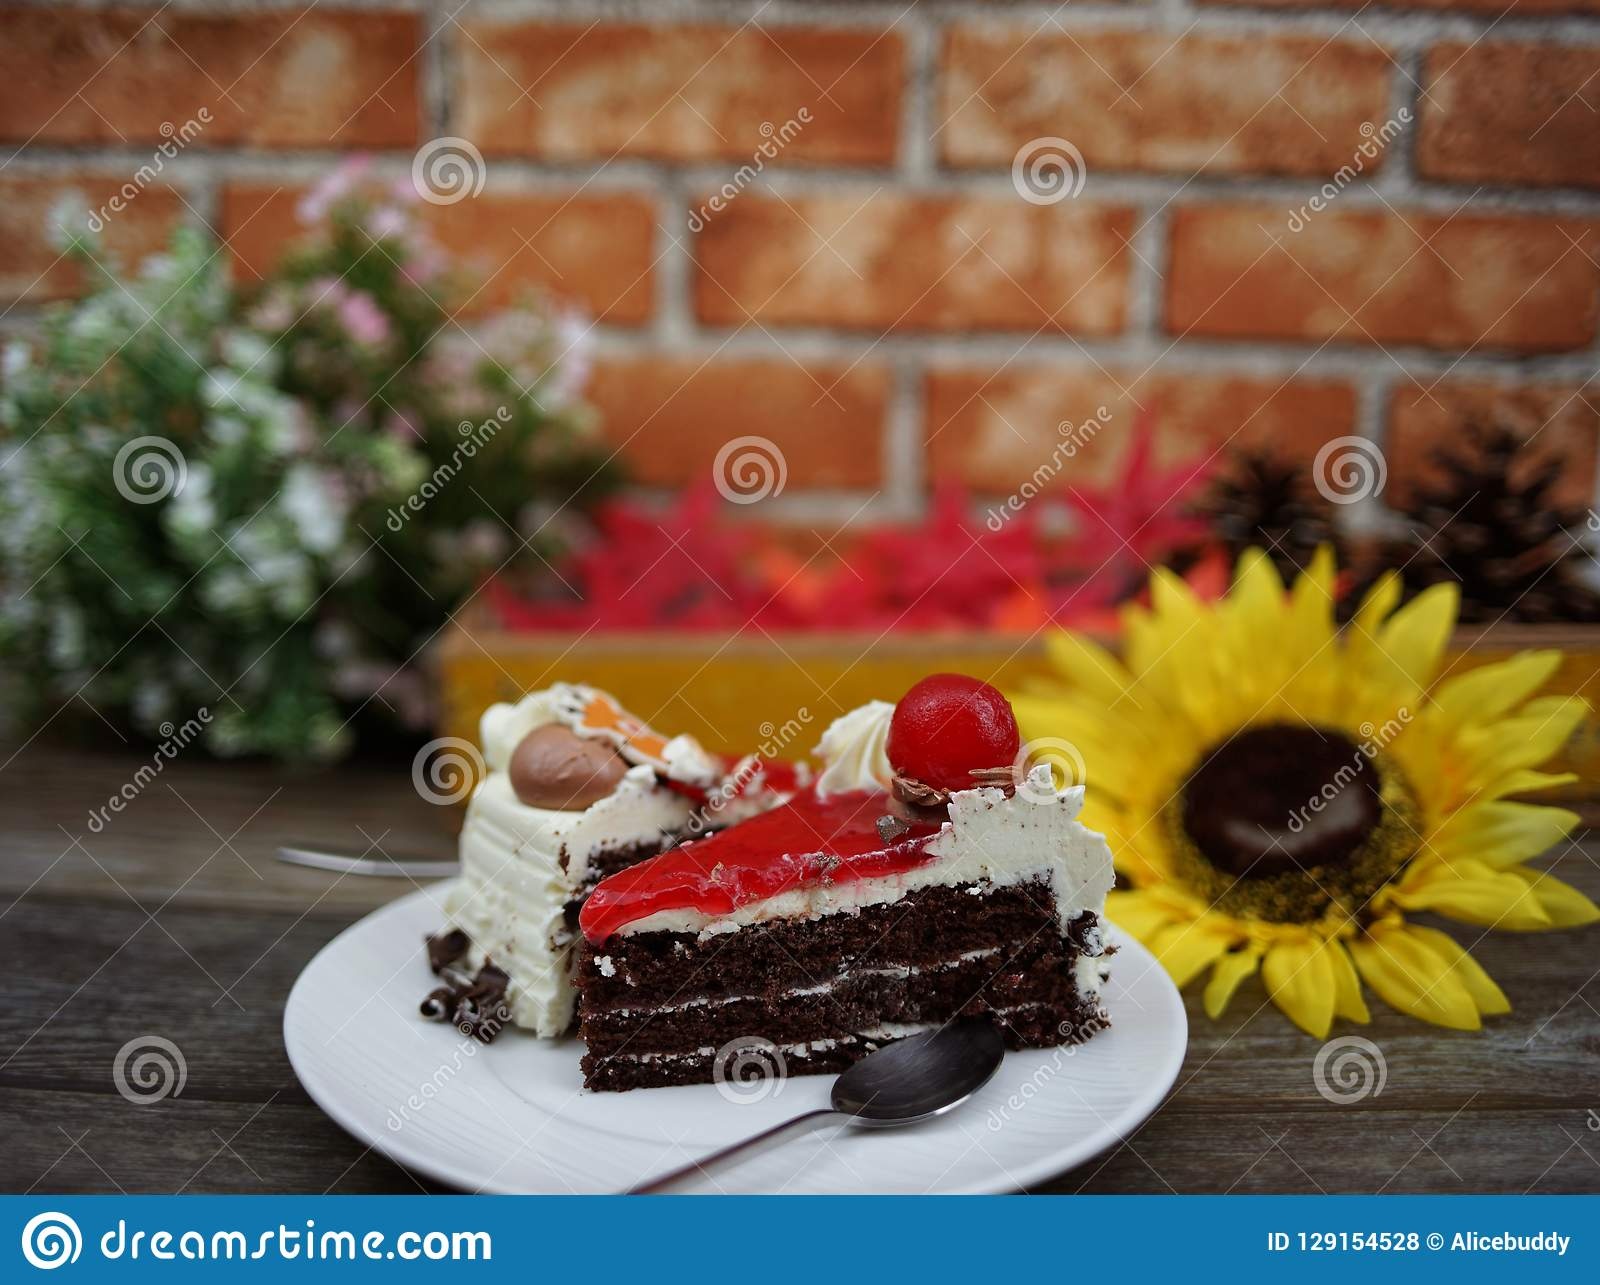 Black forest cake and flower in background